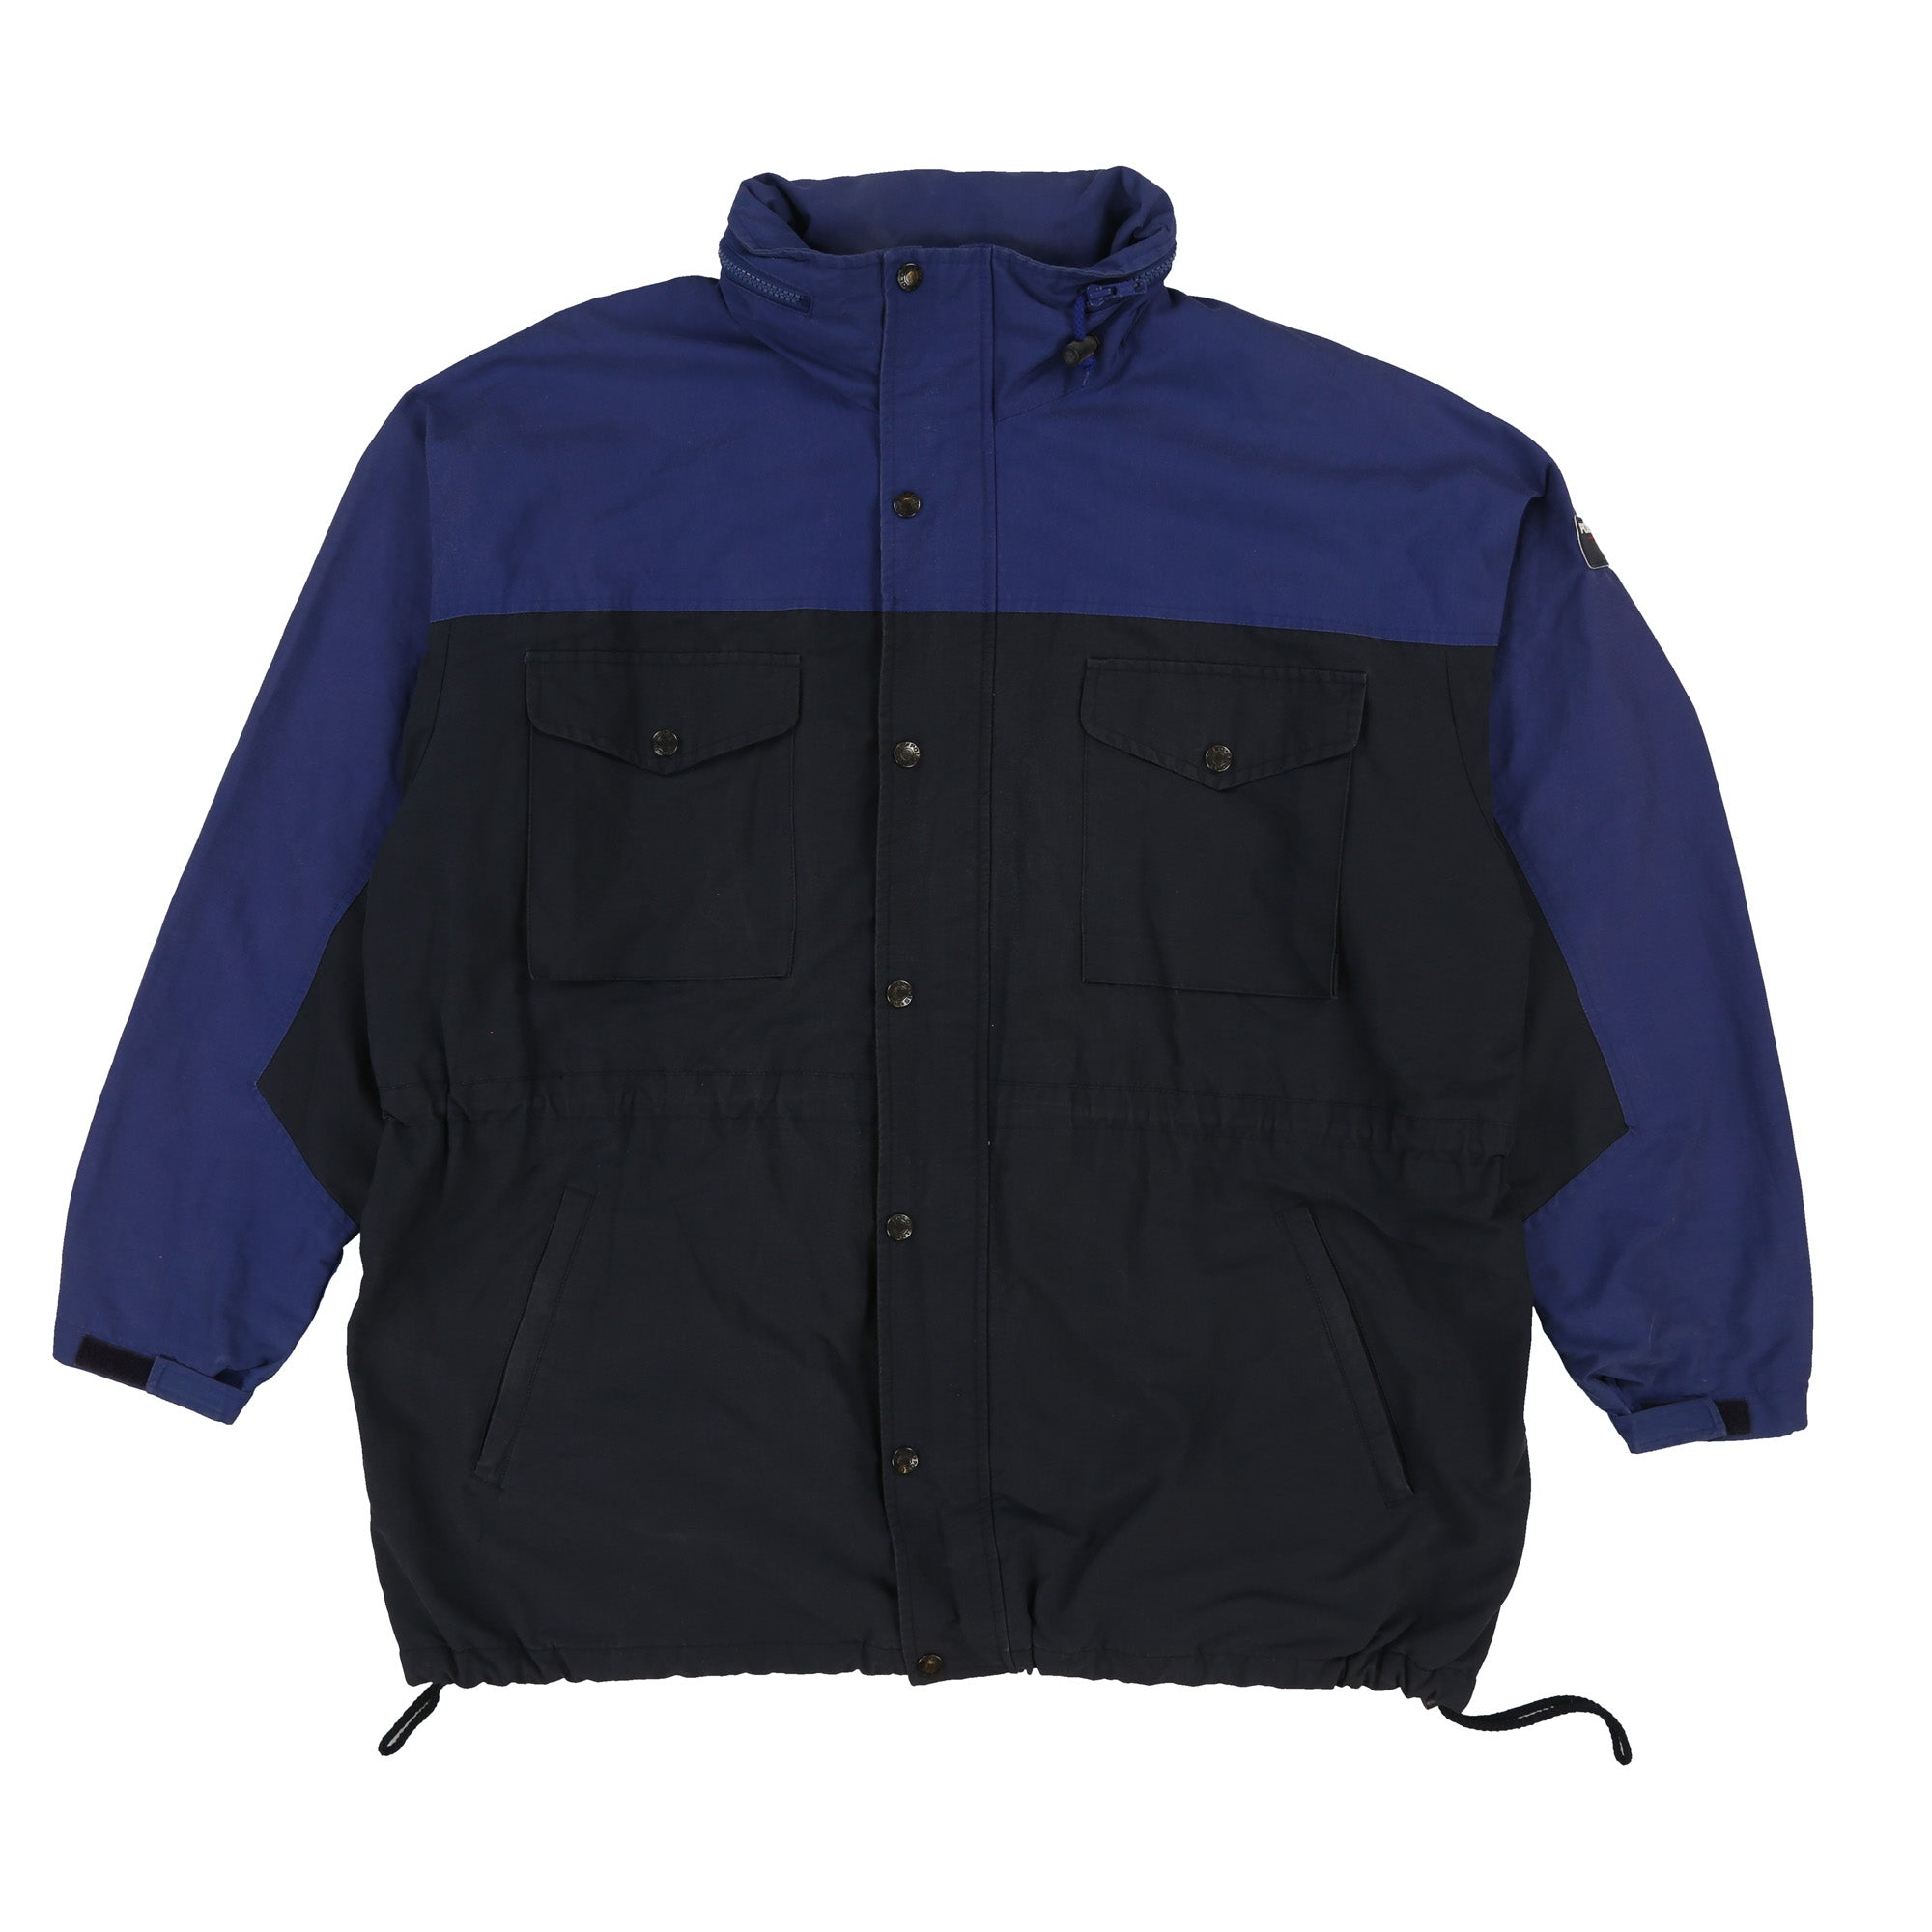 POLO SPORT PATCH PARKA JACKET // NAVY BLUE